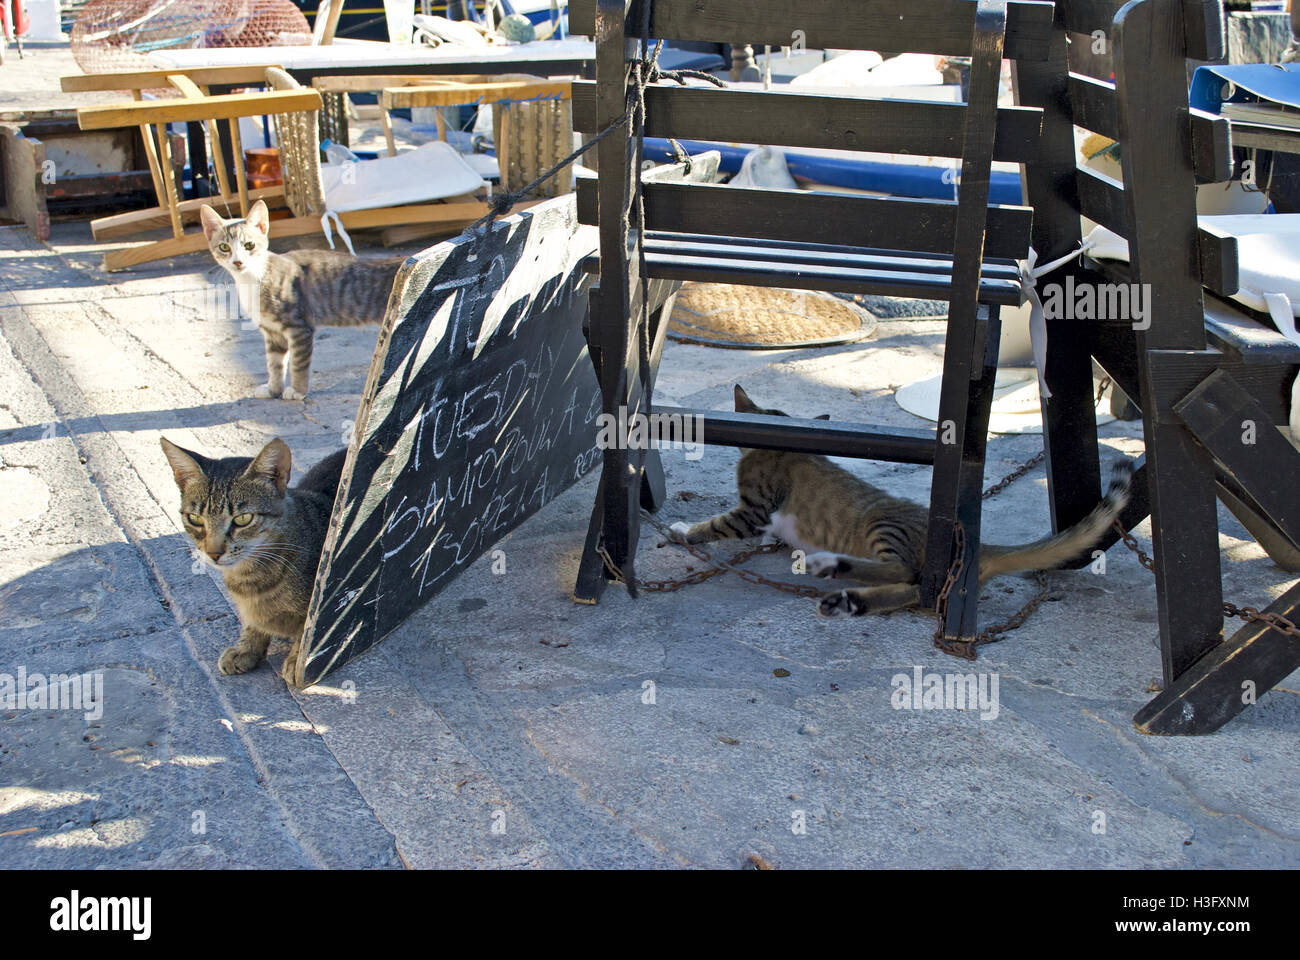 Three stray tabby cats play amongst wooden chairs at the pier in Samos. - Stock Image